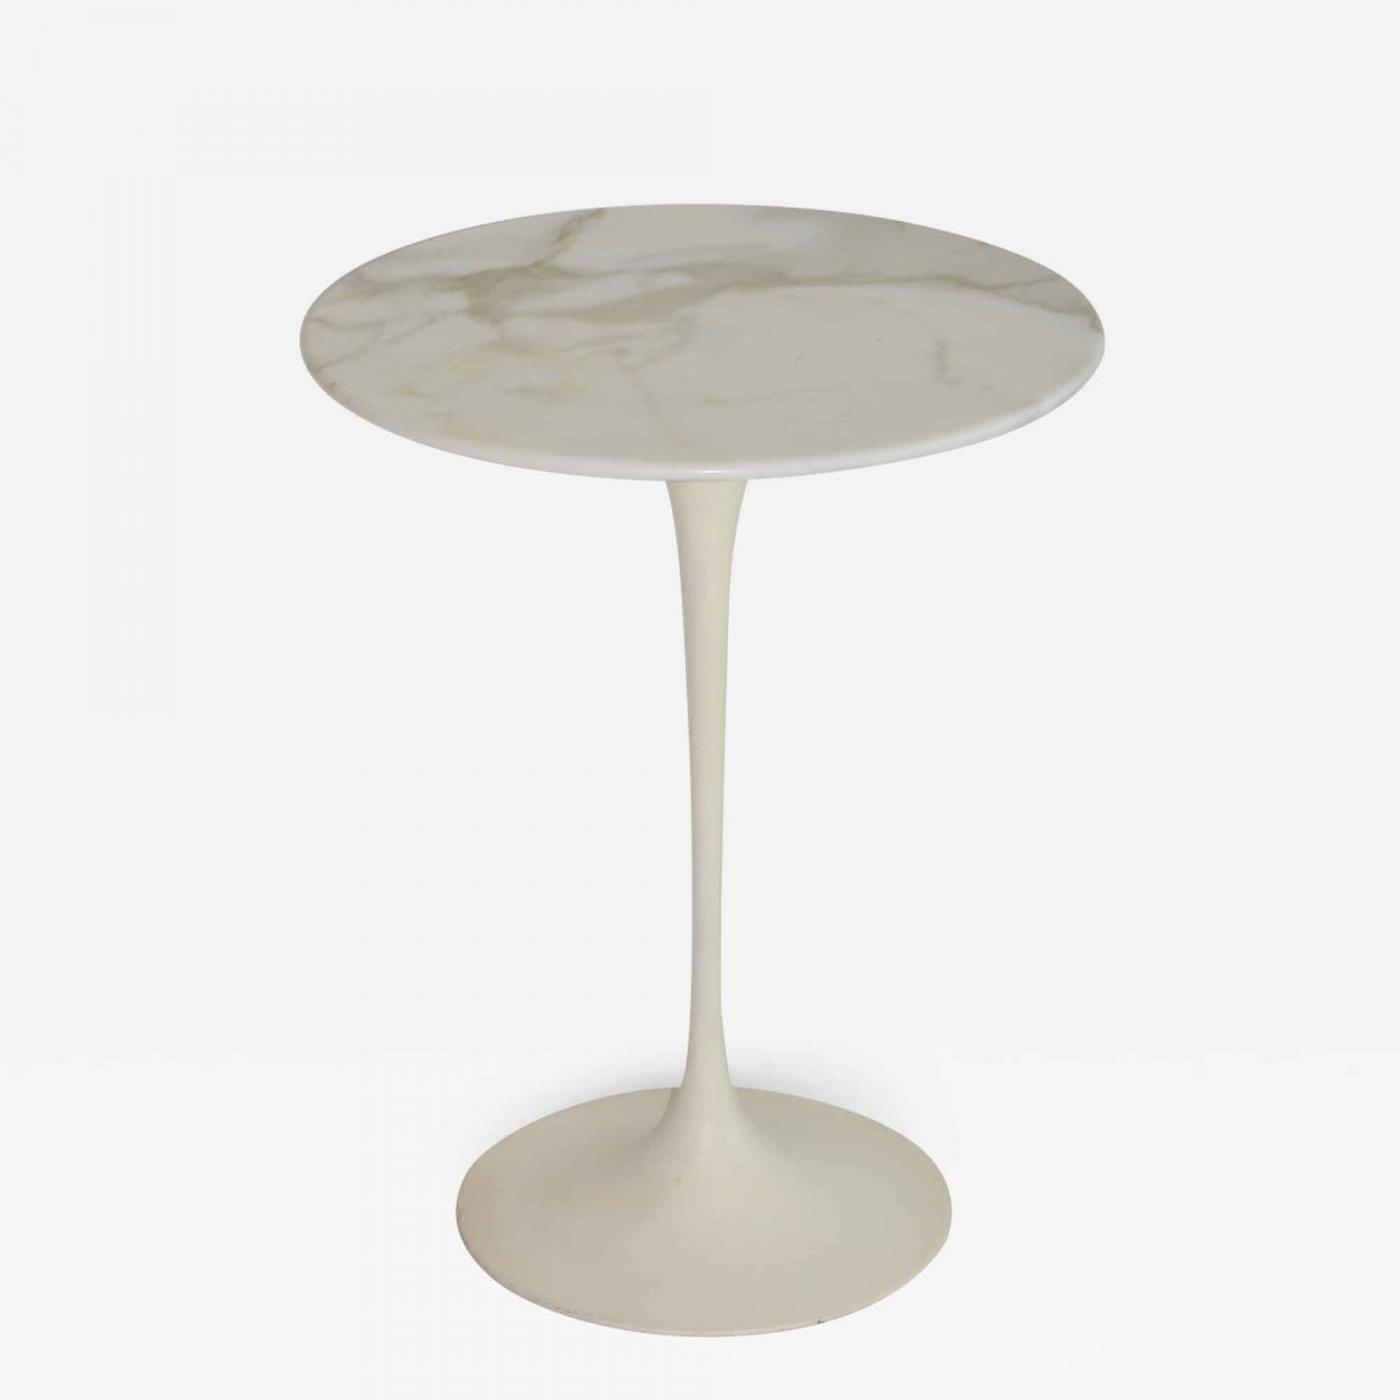 Saarinen Knoll Table Eero Saarinen Eero Saarinen Tulip Side Table In Marble By Knoll